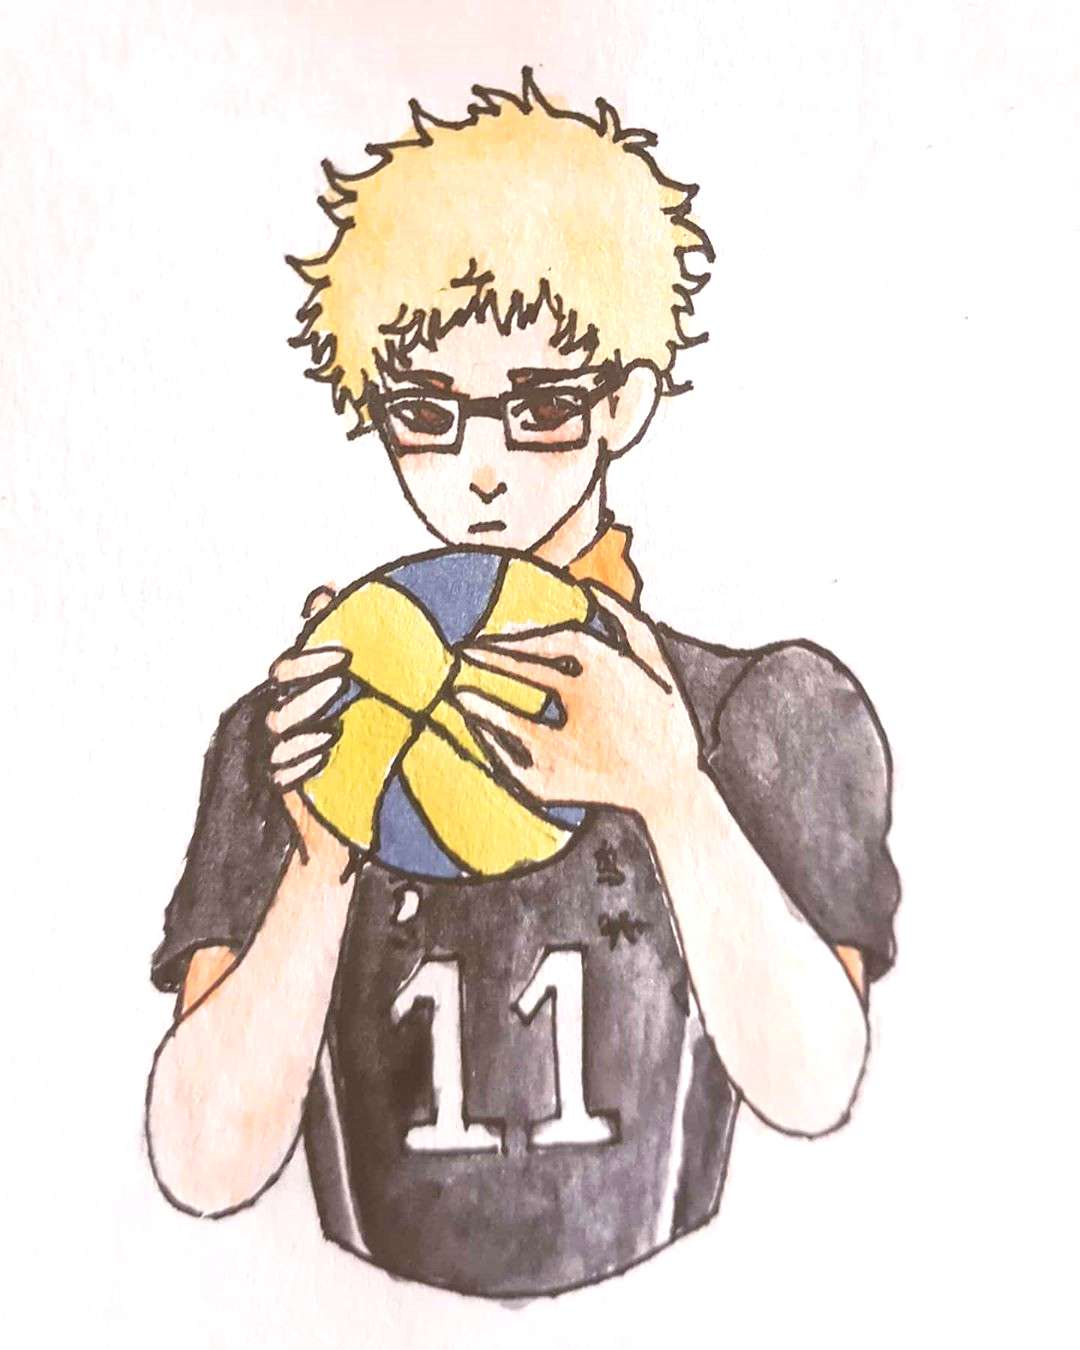 Another request done! It's my first time actually drawing a haikyuu character owo